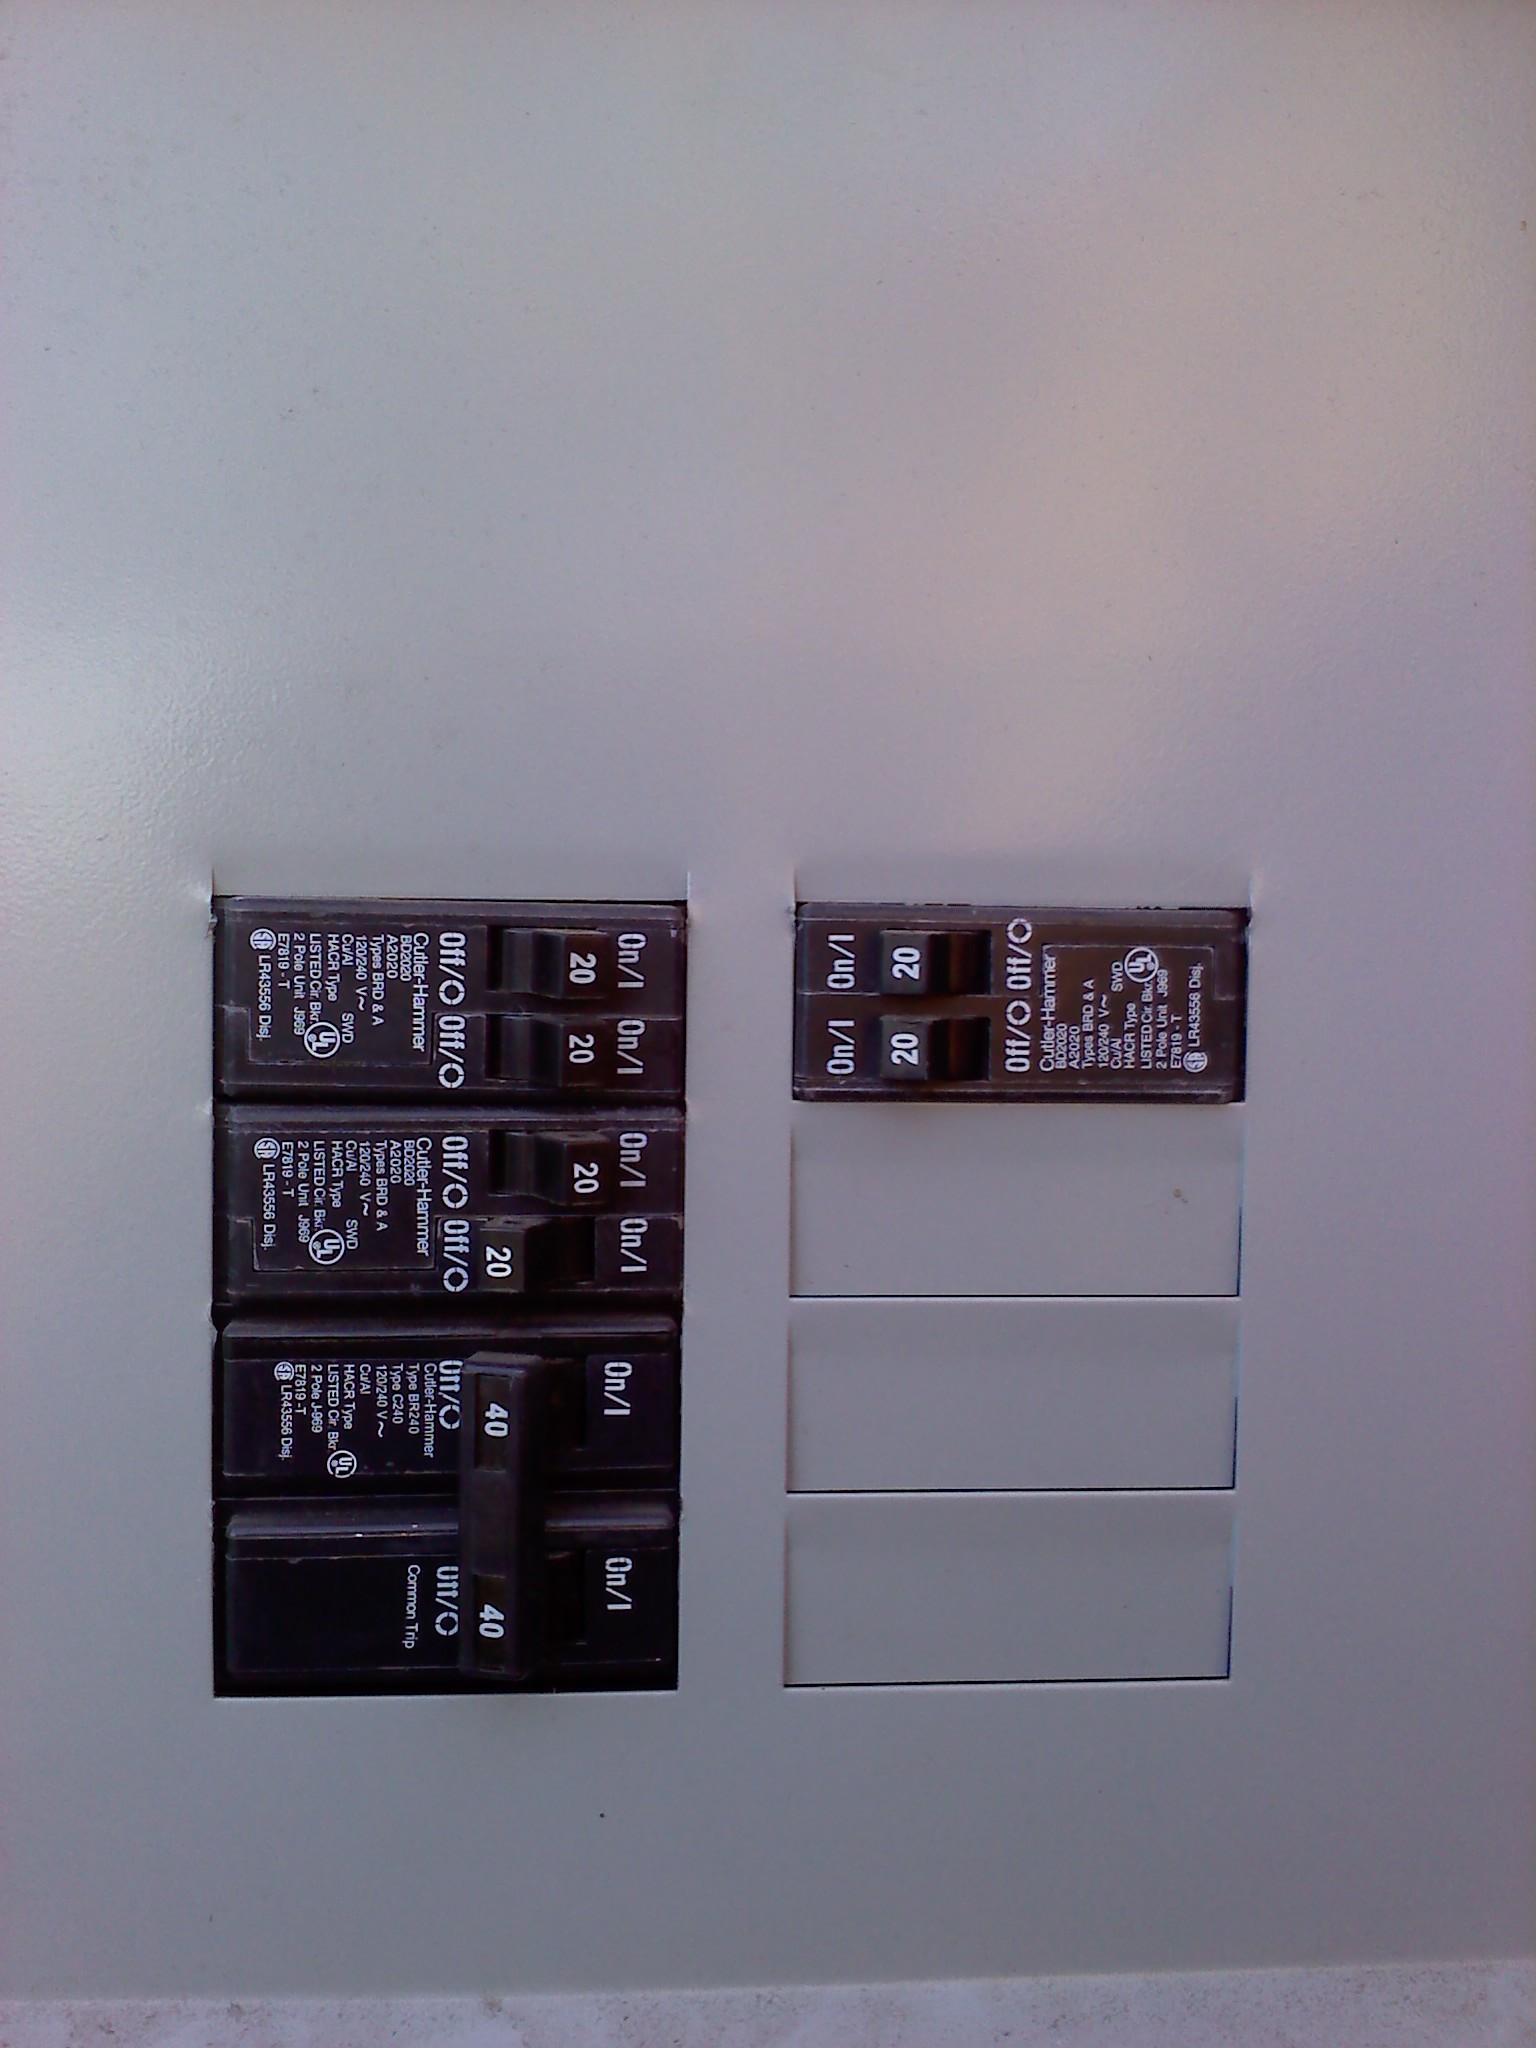 Sub Panel View Diagram 100 Amp Sub Panel Wiring Diagram 100 Amp Sub